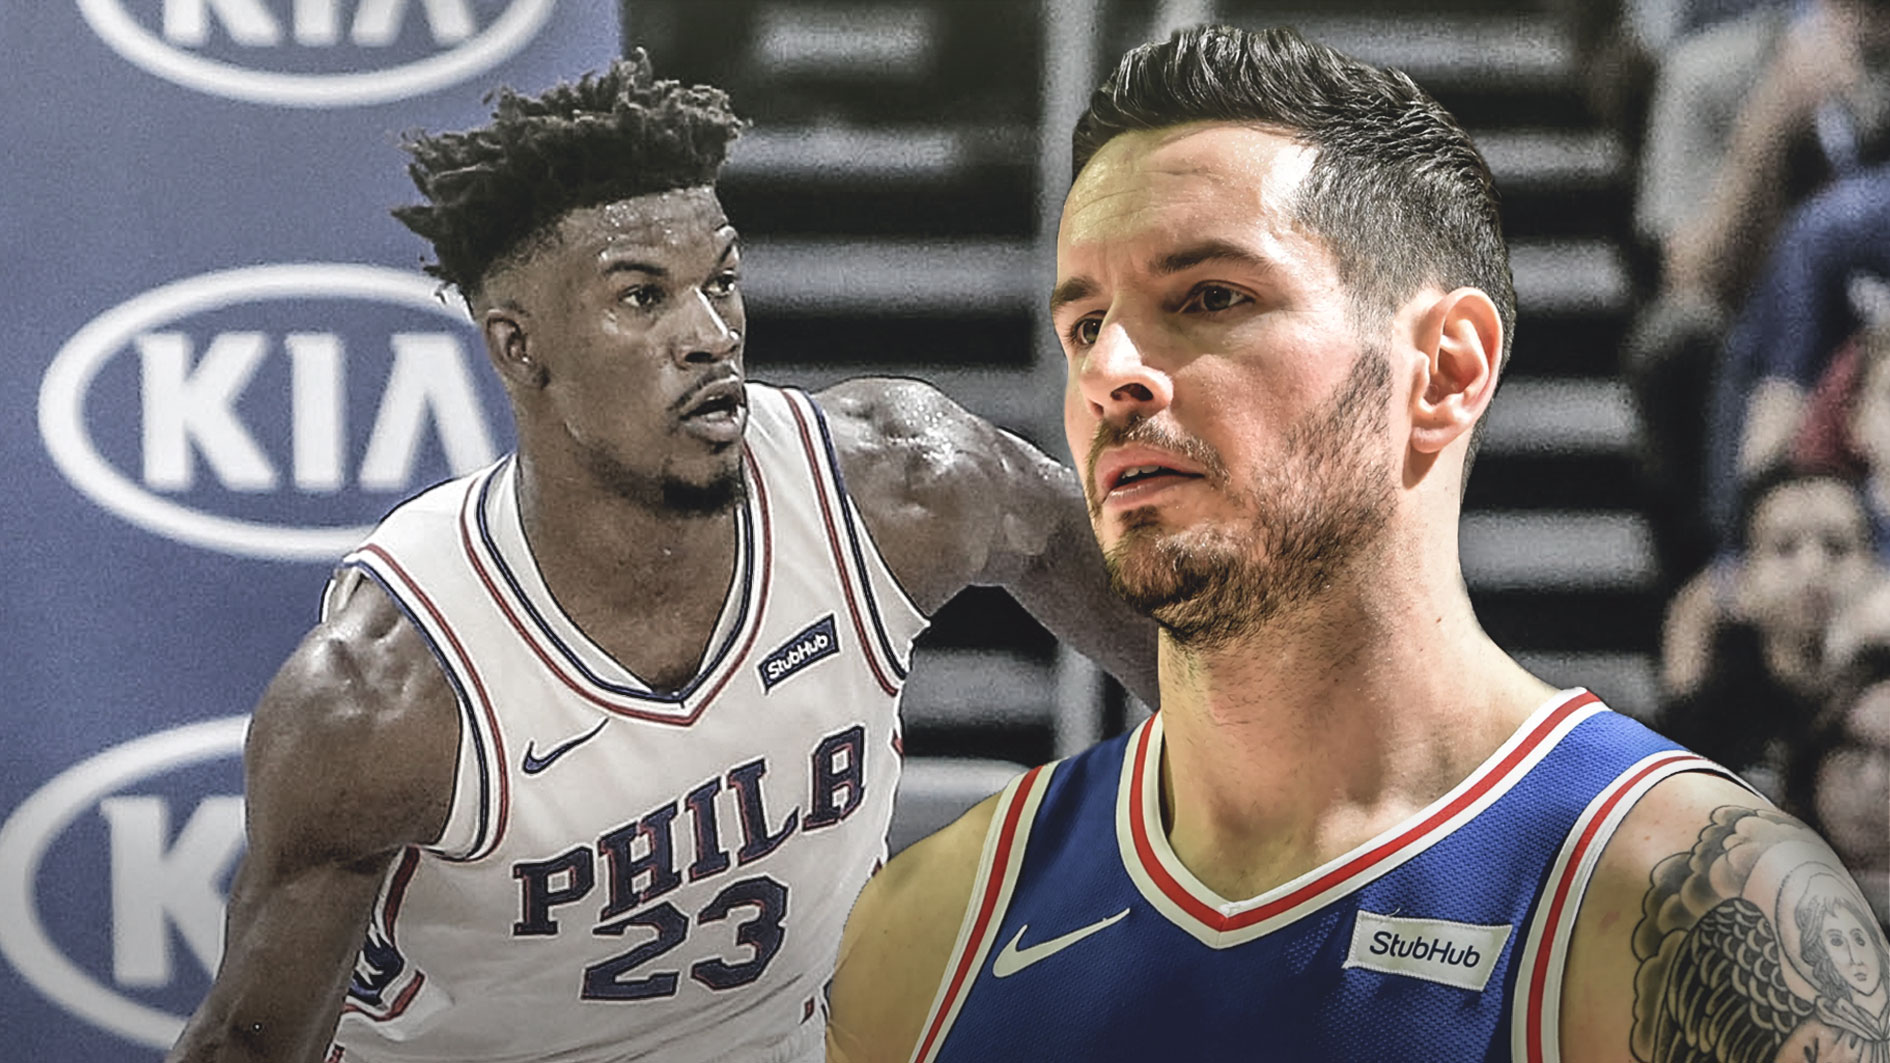 Jimmy Butler and J.J. Redick